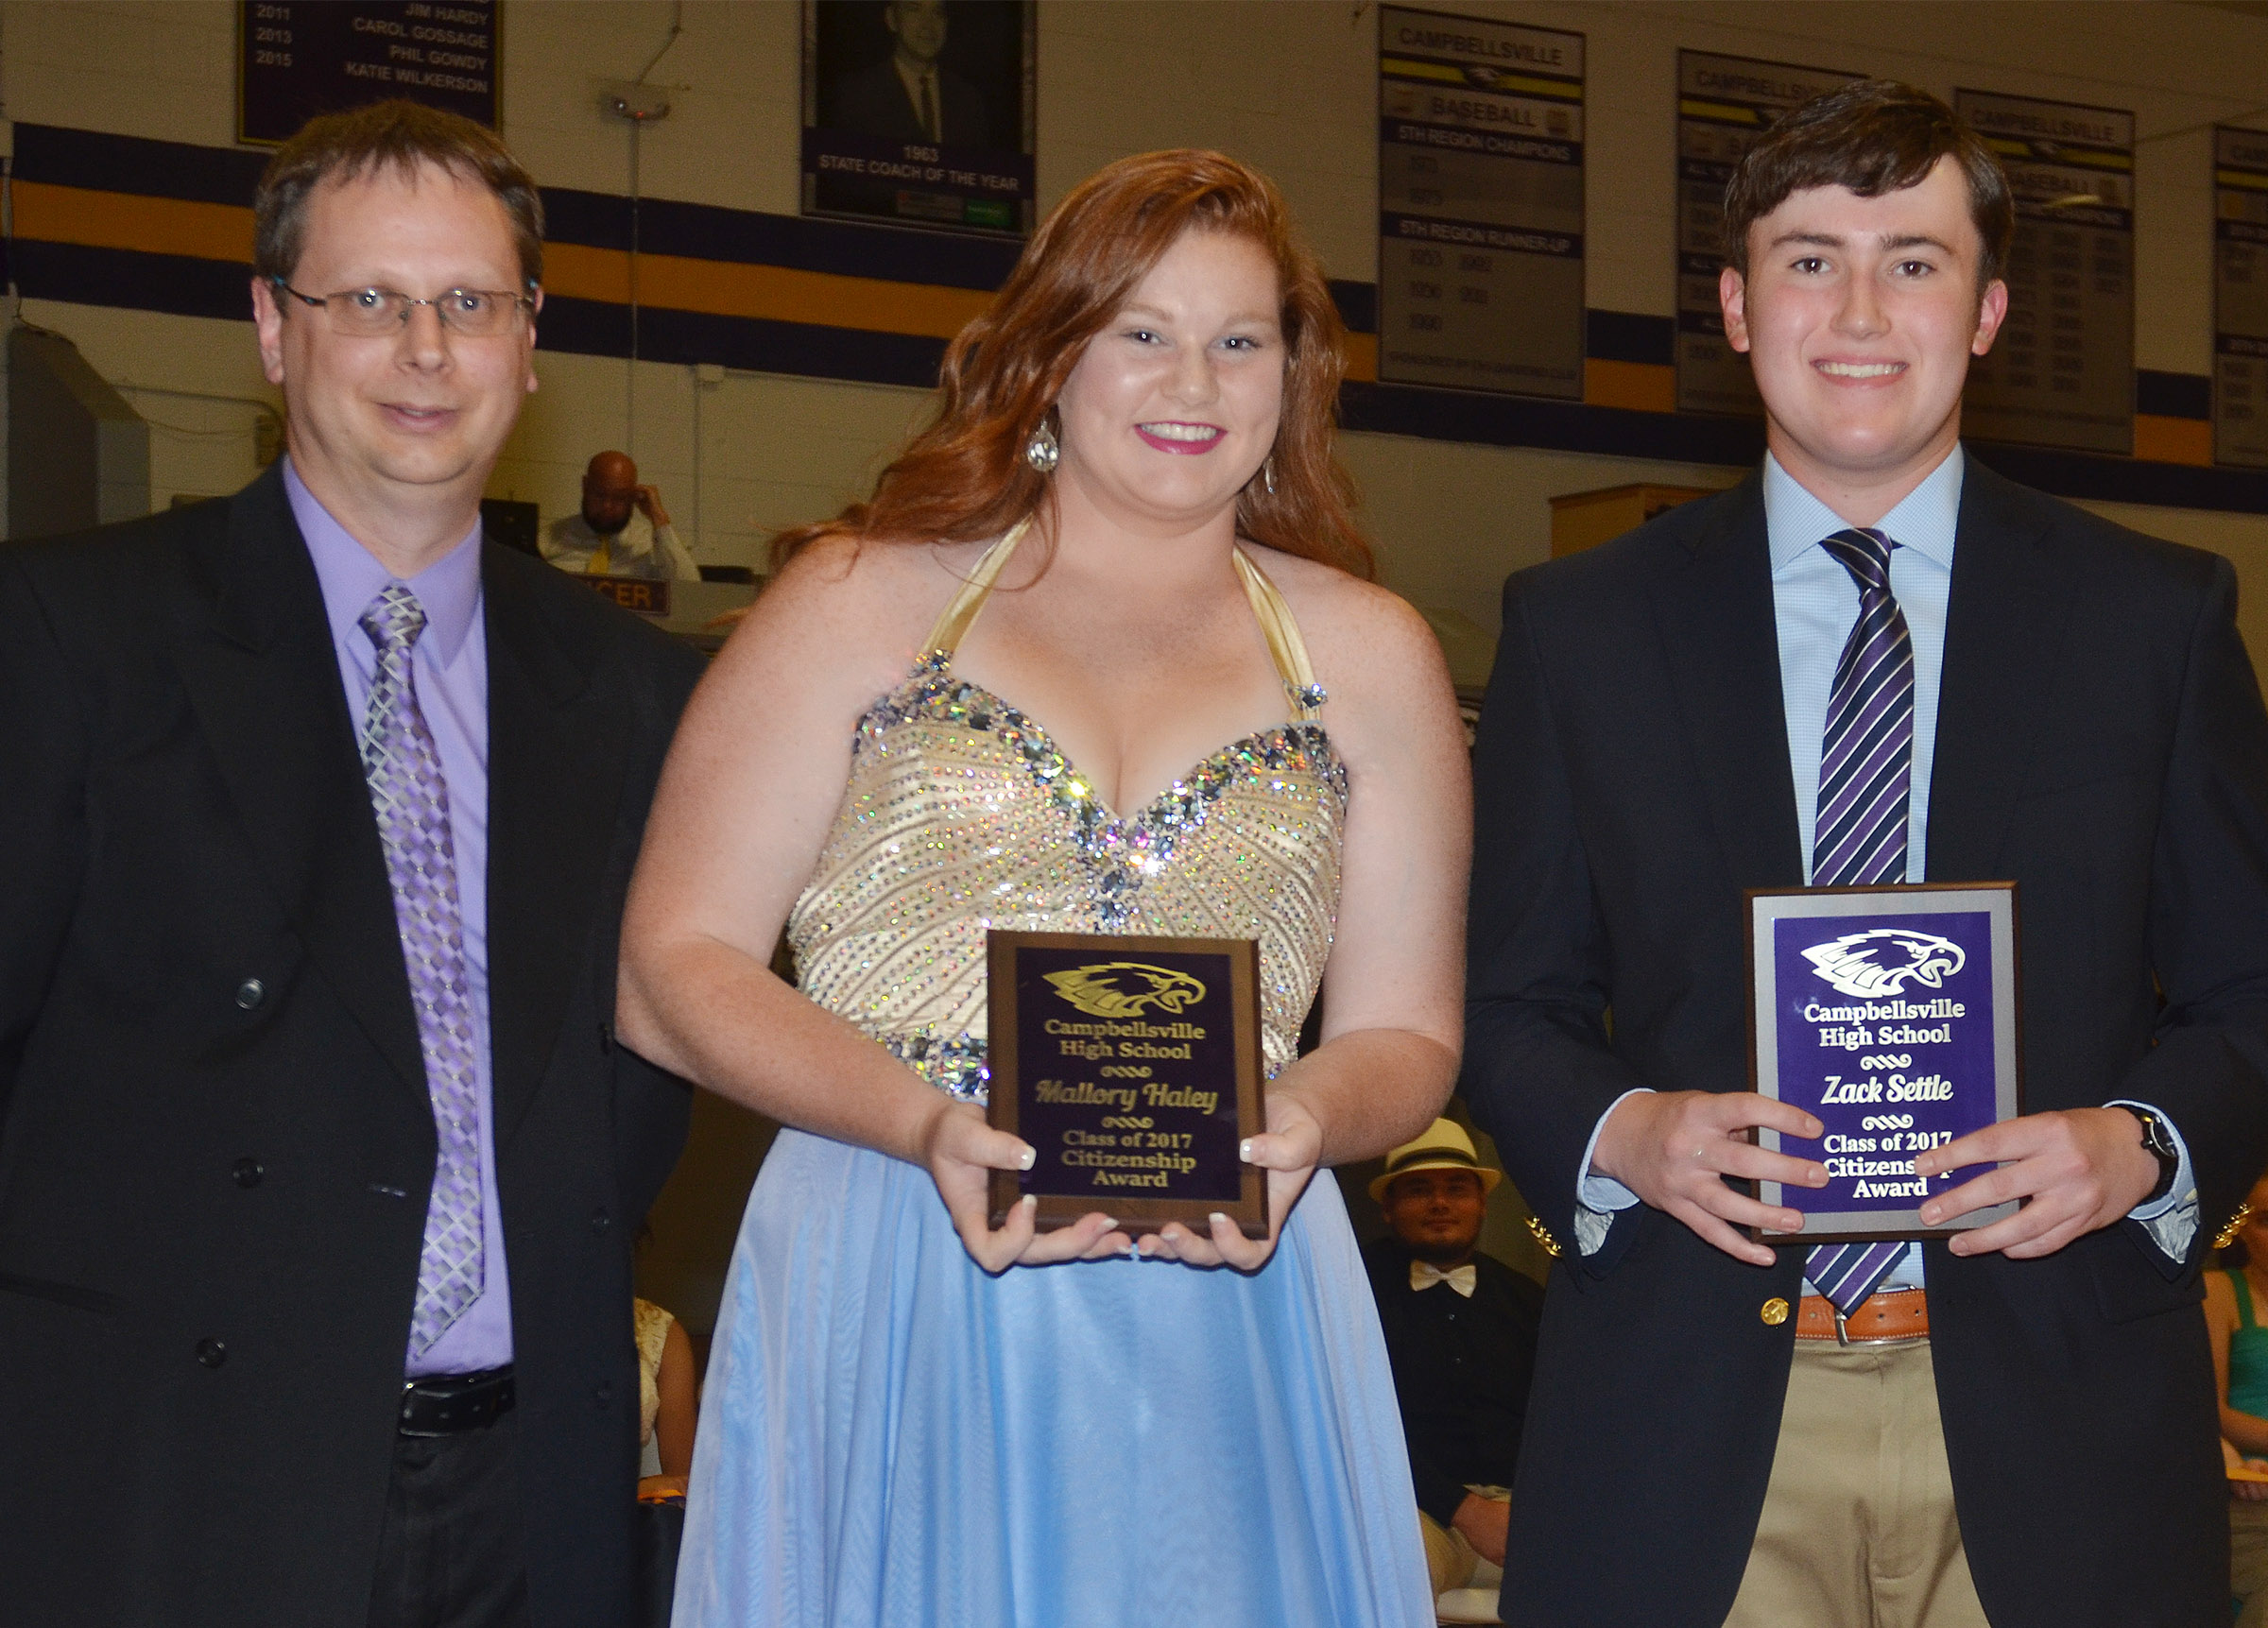 Mallory Haley and Zack Settle receive the citizenship award. They are pictured with guidance counselor Richard Dooley.